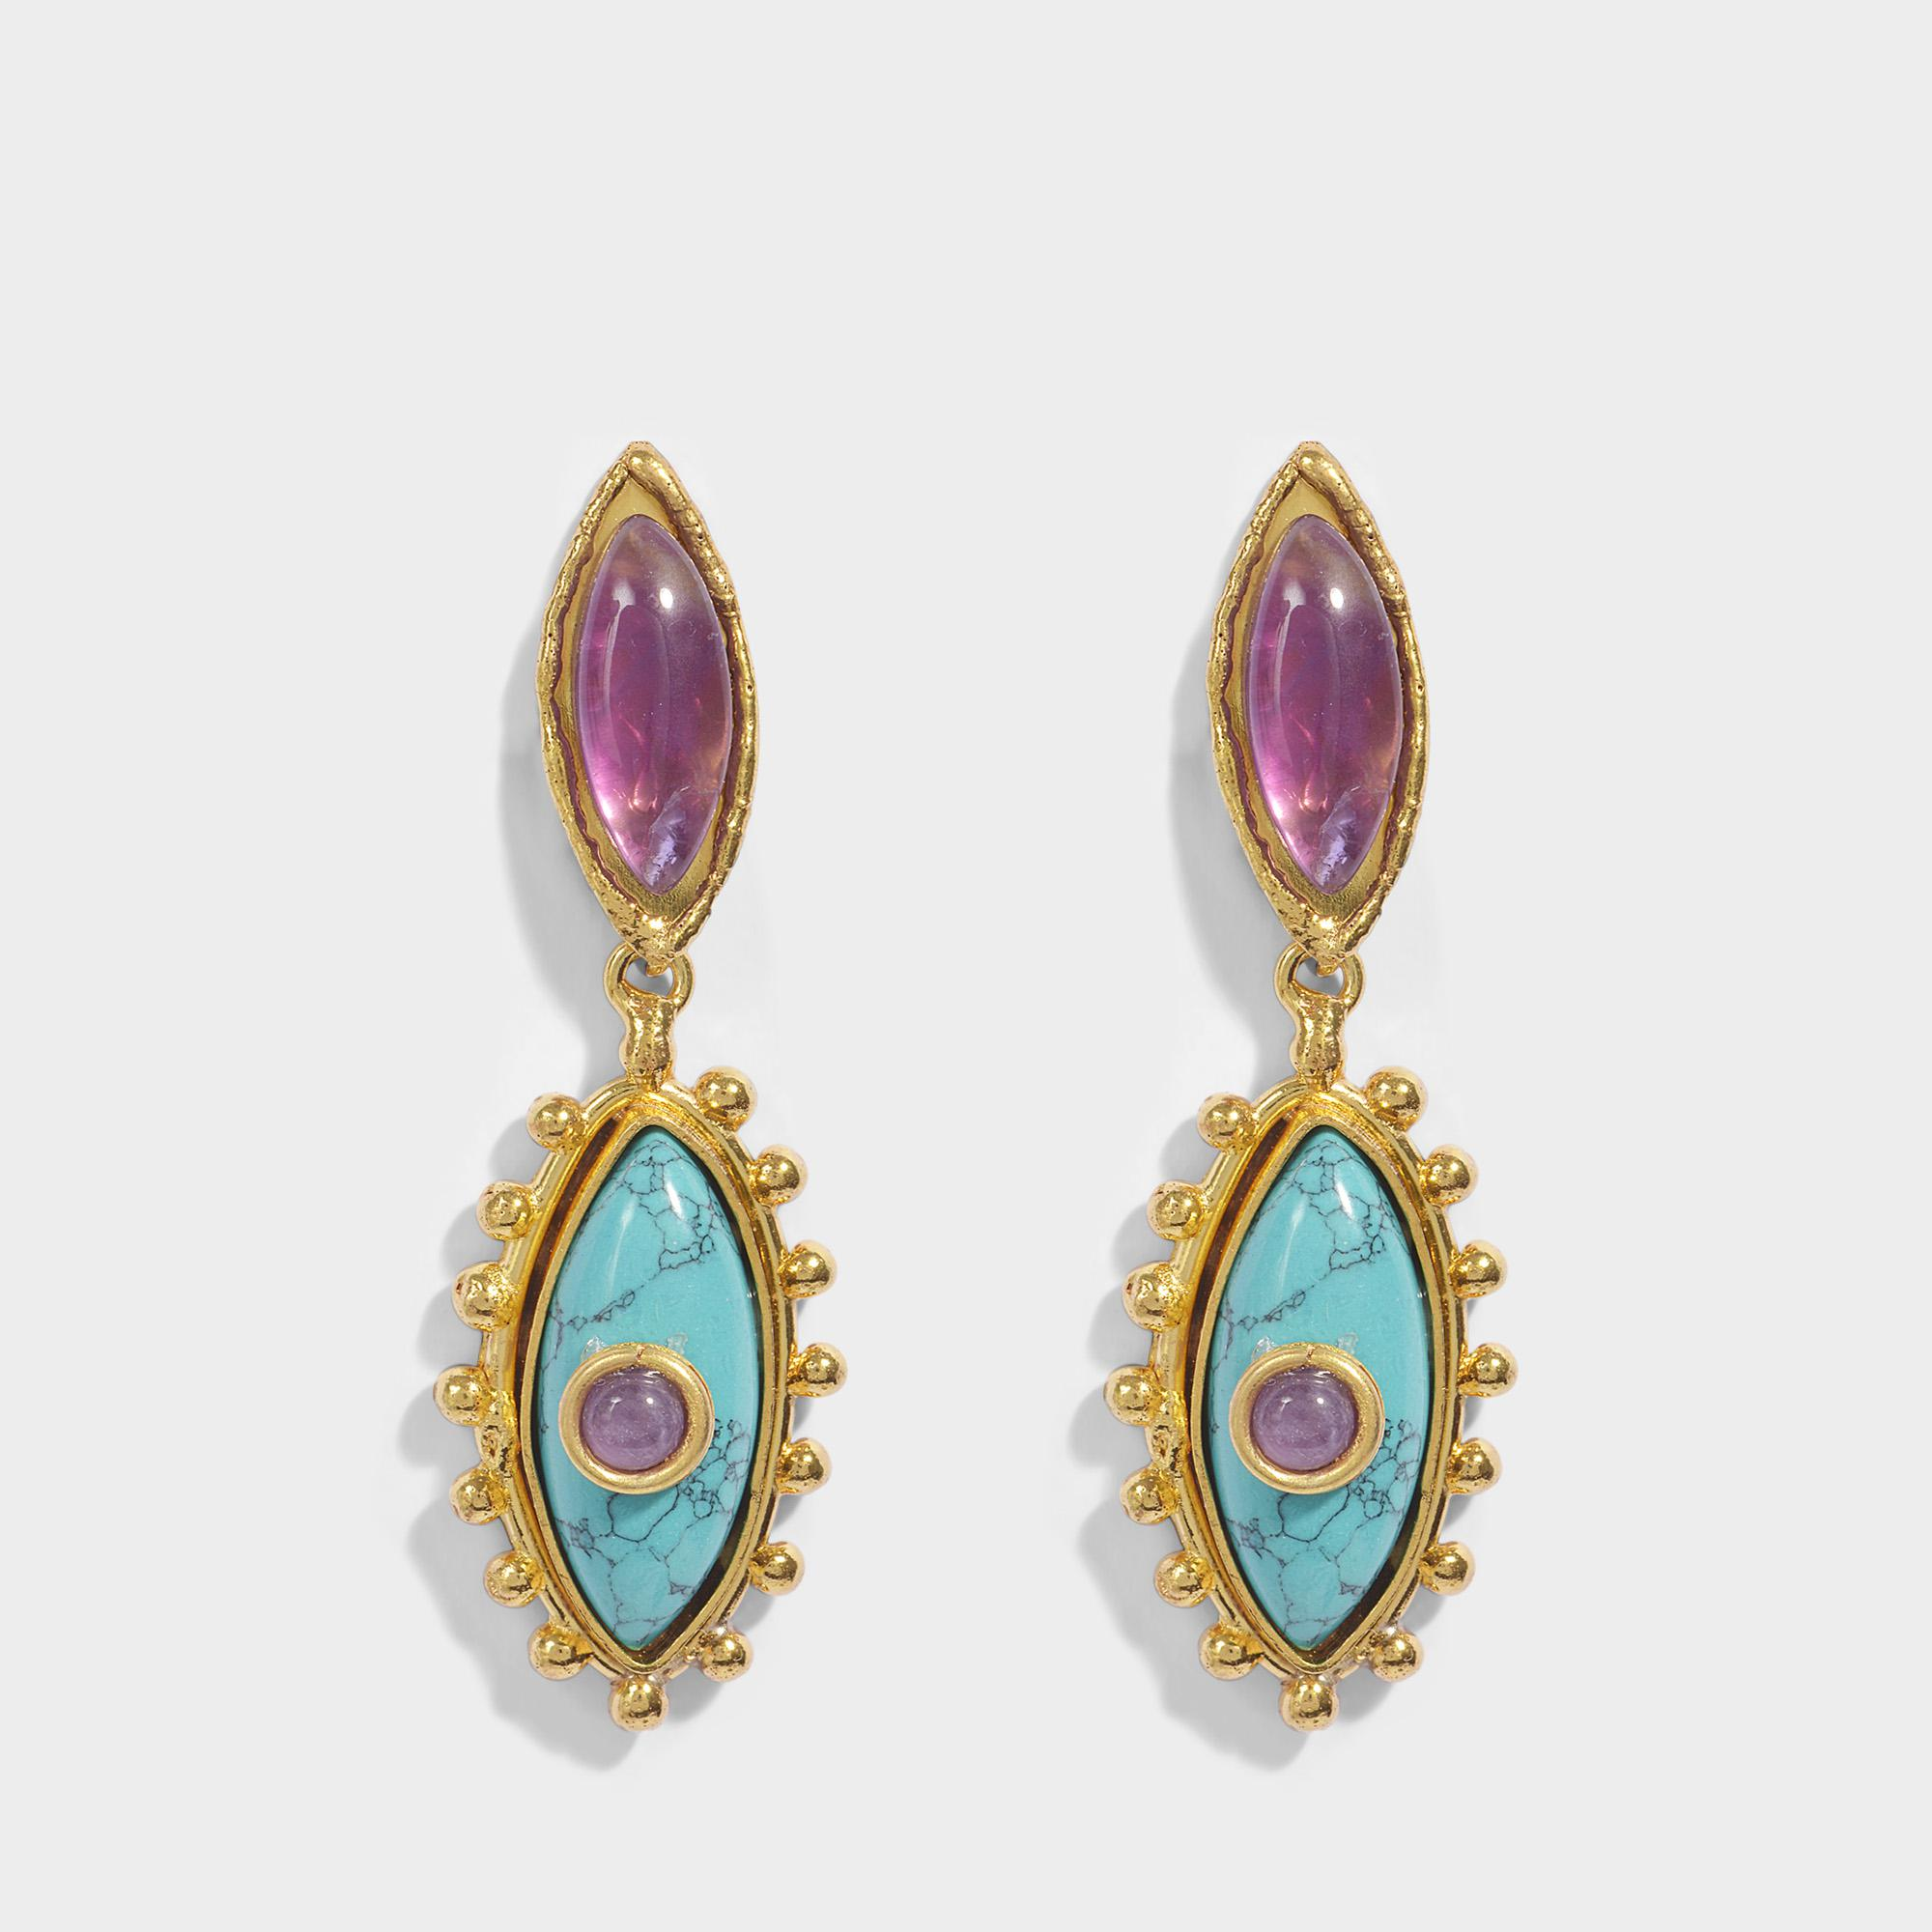 Sylvia Toledano The Third Eye Earrings in Gold-Plated Brass with Amethyst, Turquoise and Ametyst